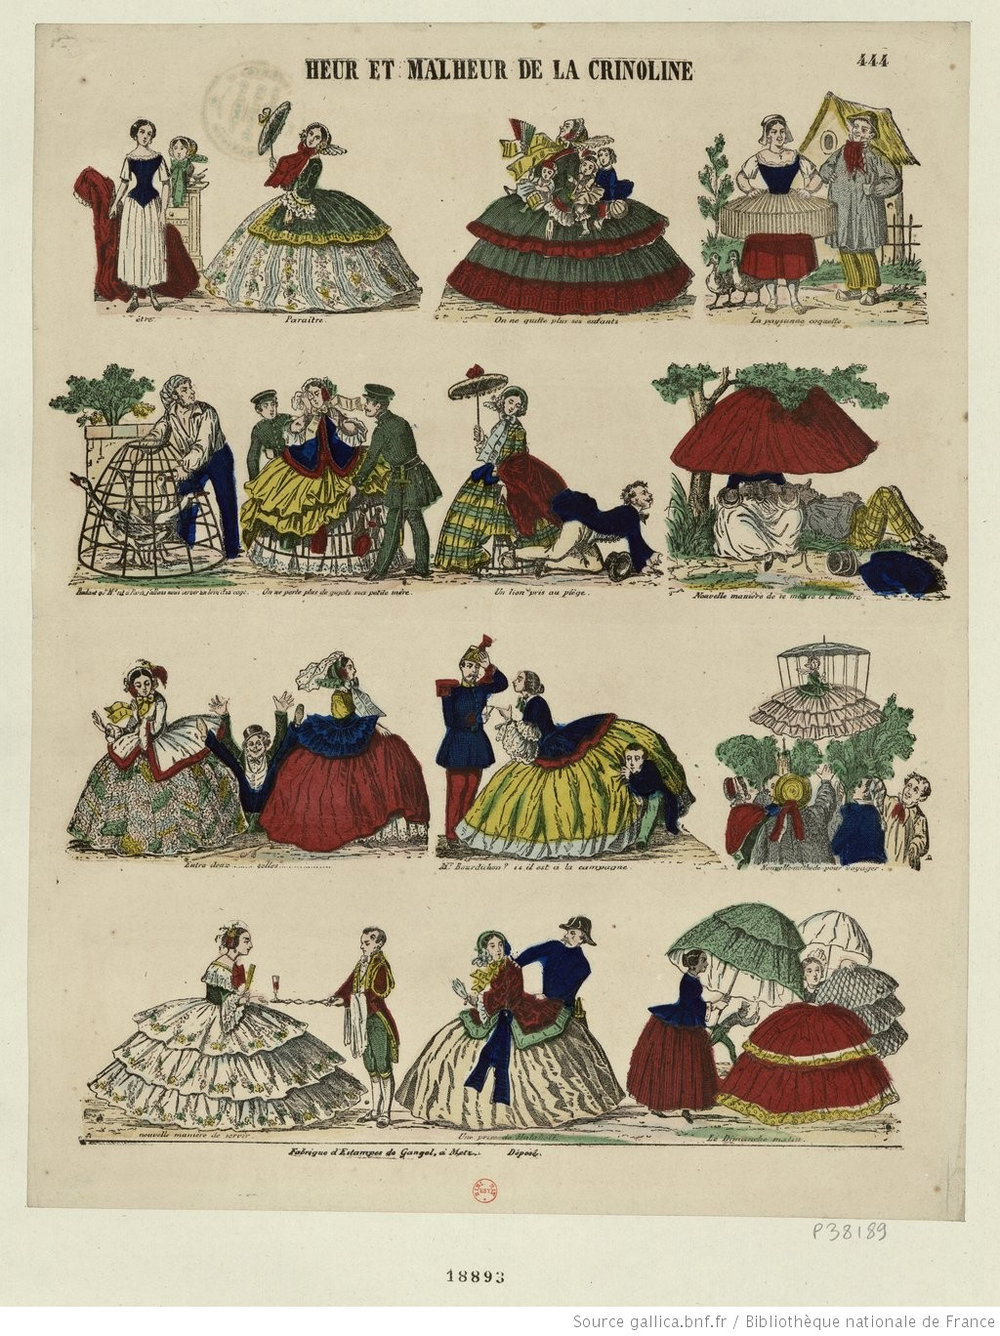 A fine French illustration of all the things one can do with a crinoline cage. Man hiding! Goose keeping! This is an example of one of the MANY satirical cartoons and illustrations this enormous mid 19th-century fashion staple inspired.   Bibliothèque nationale de France, département Estampes et photographie, RESERVE FT 4-QB-370 (157).